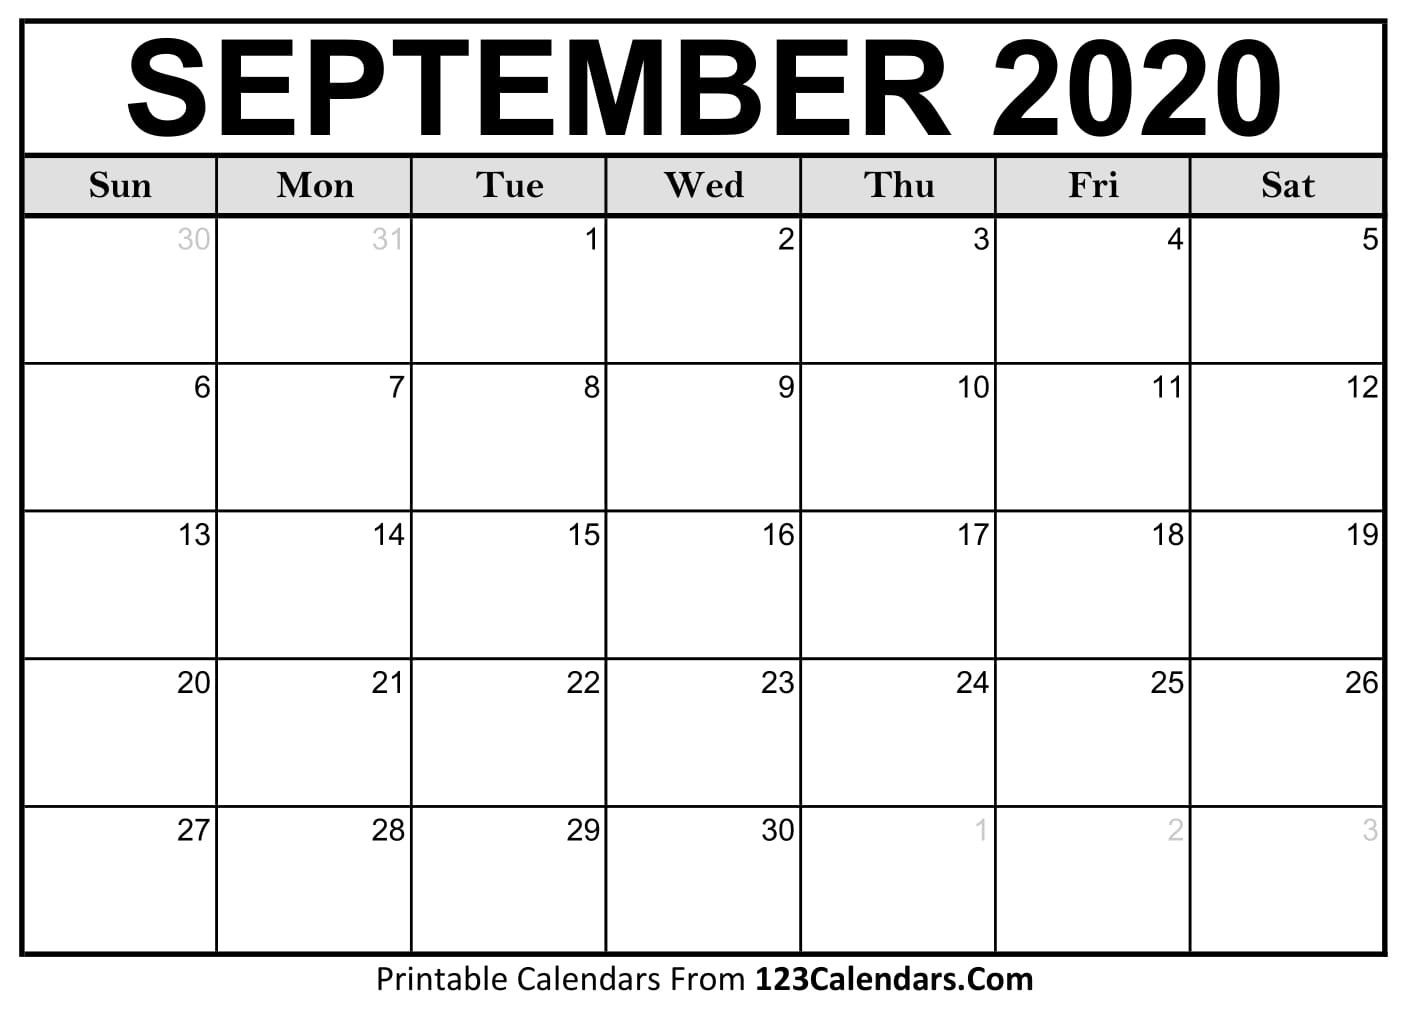 September 2020 Printable Calendar | 123Calendars  2020 Calendar September To November